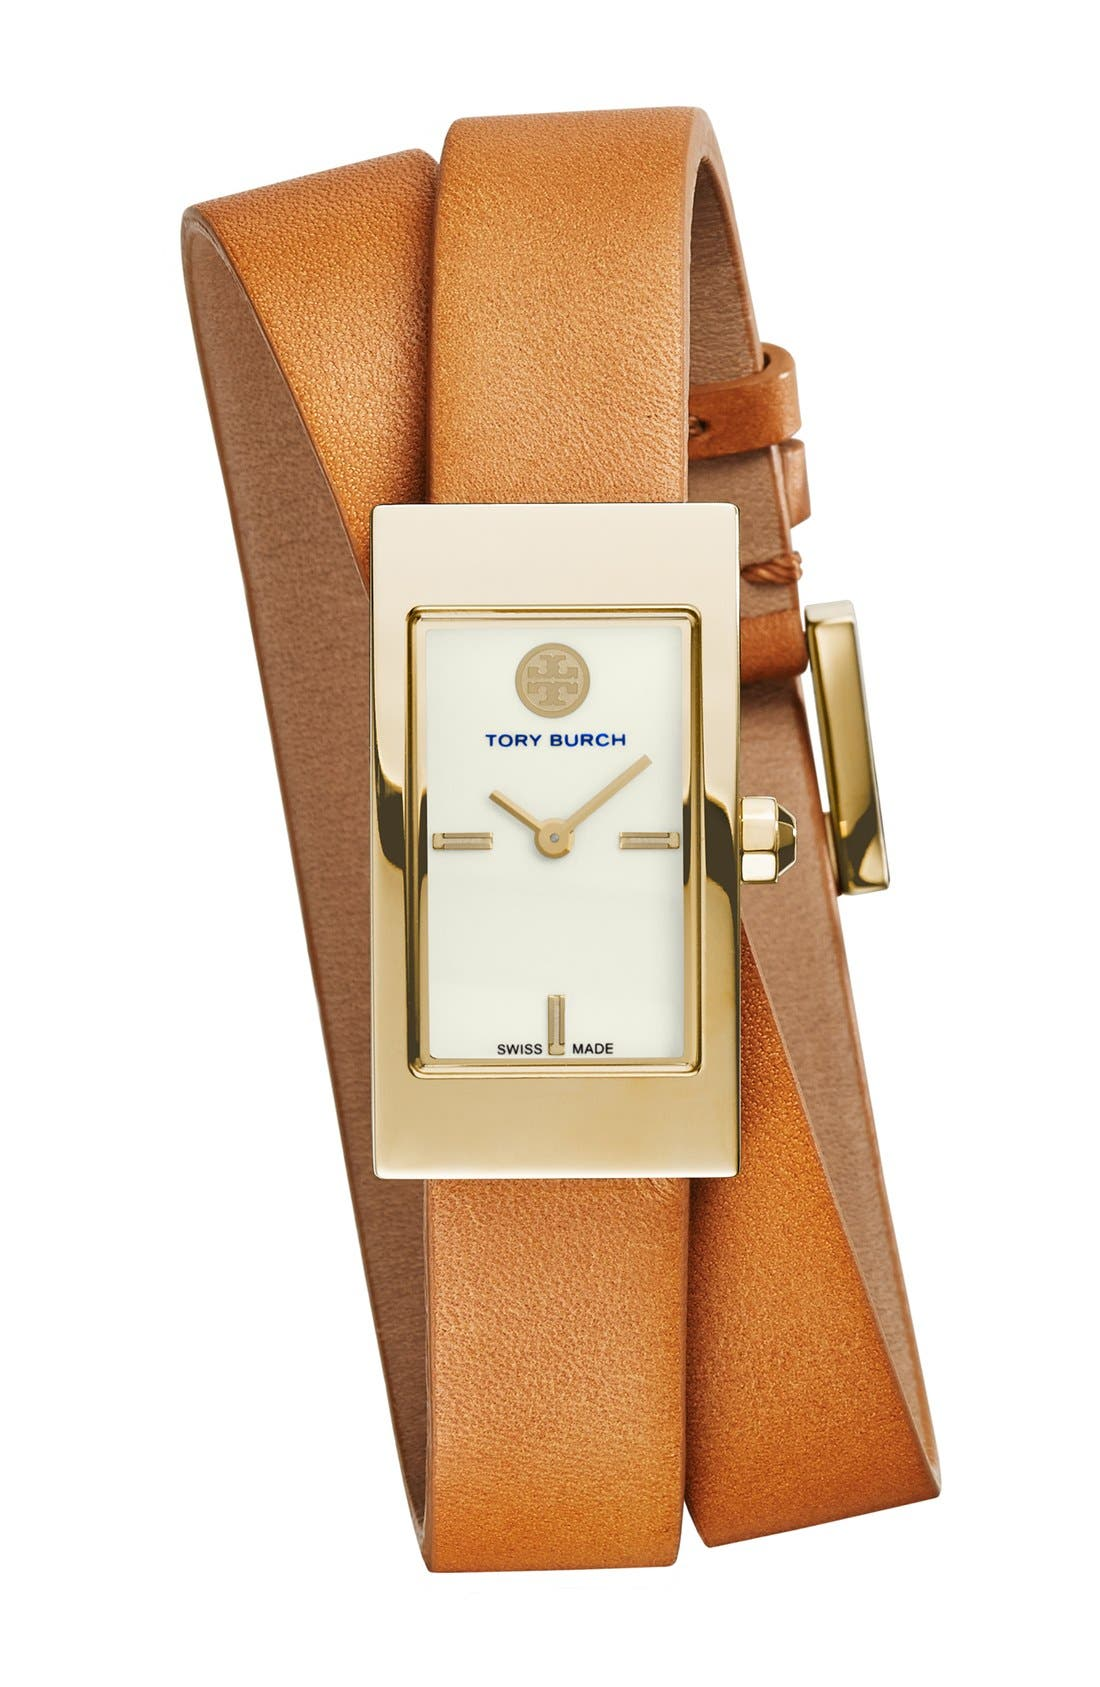 Alternate Image 1 Selected - Tory Burch 'Buddy Signature' Rectangular Wrap Leather Strap Watch, 17mm x 31mm